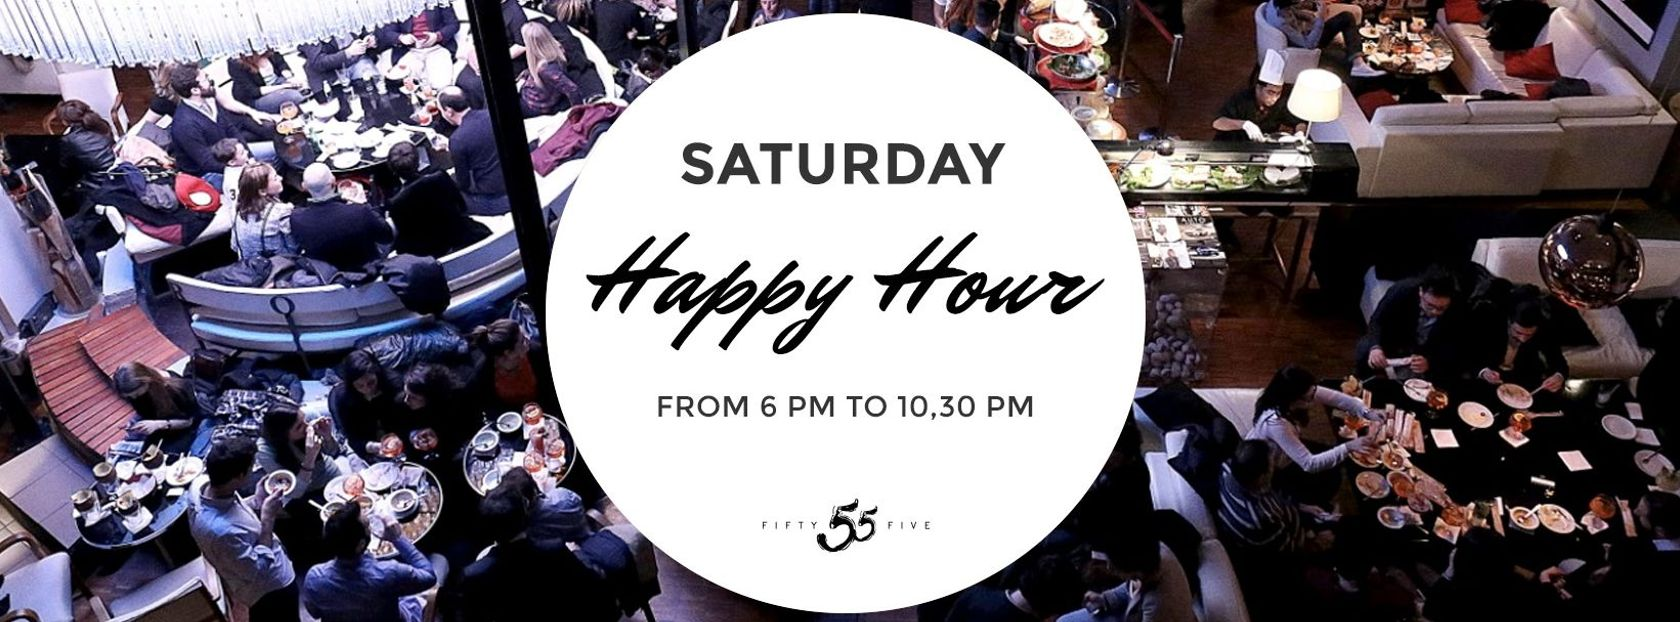 Saturday - Happy Hour